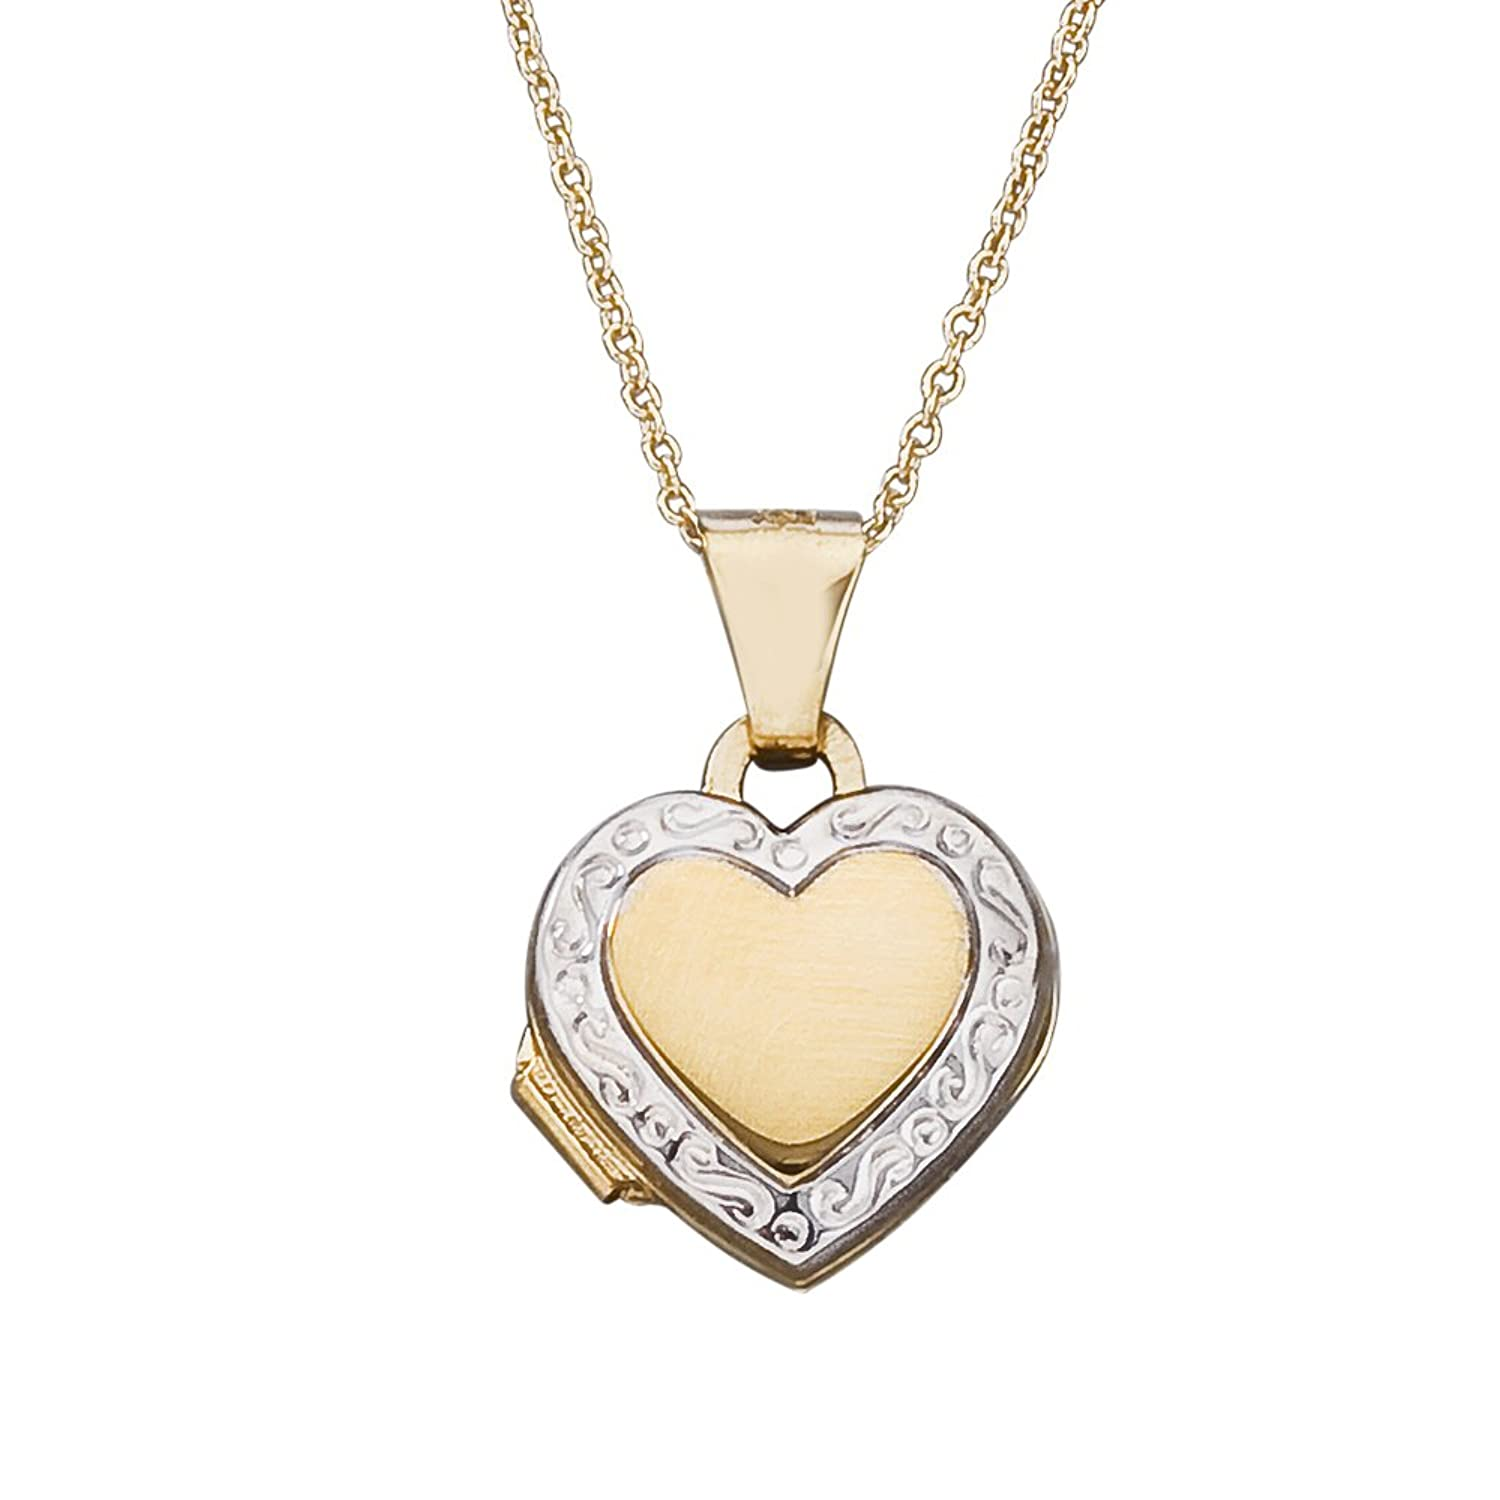 silver pendant length rhodium lockets plated necklace asp heart locket key elements gold rose and p double